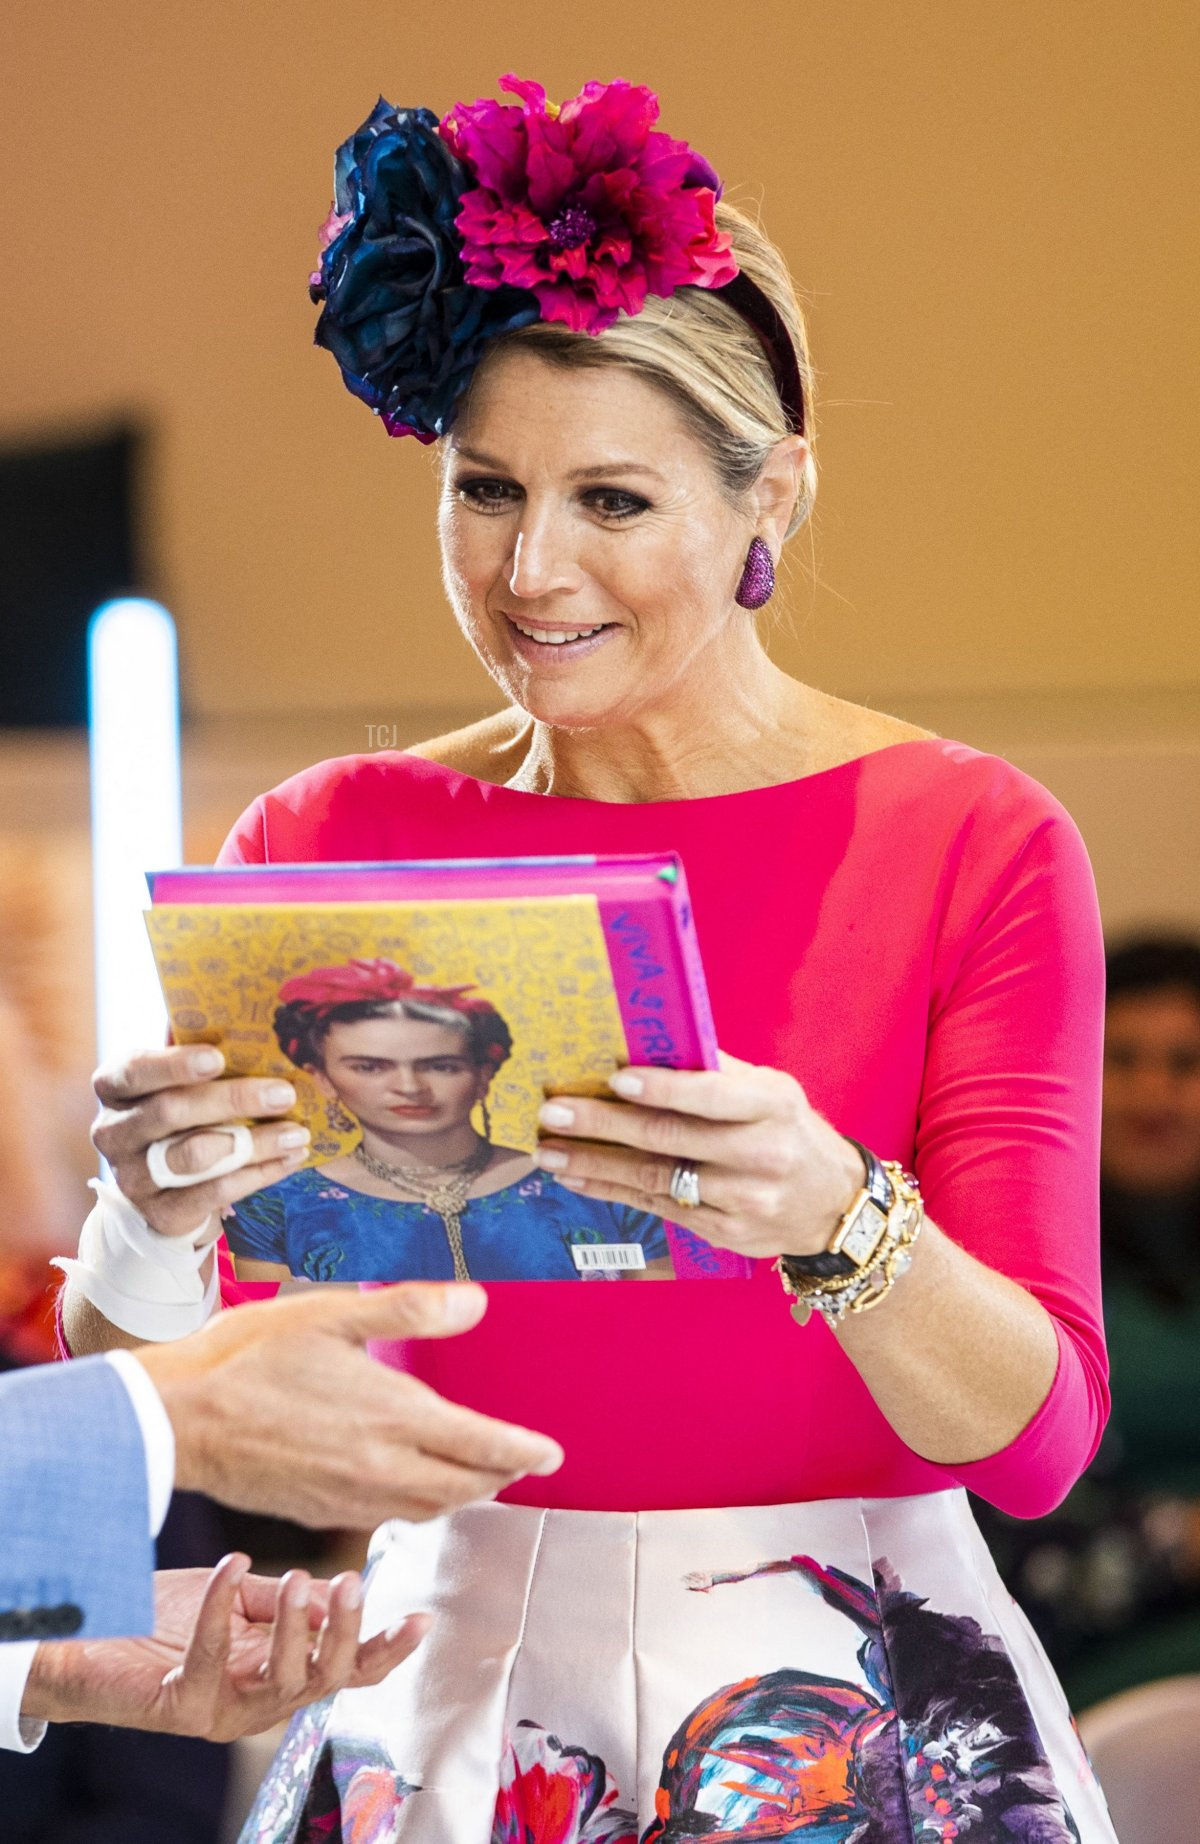 """Queen Maxima of Netherlands attends the opening of the exhibition """"Viva la Frida!: Life and Art of Frida Kahlo"""" at the Drents Museum in Assen, on October 7, 2021"""